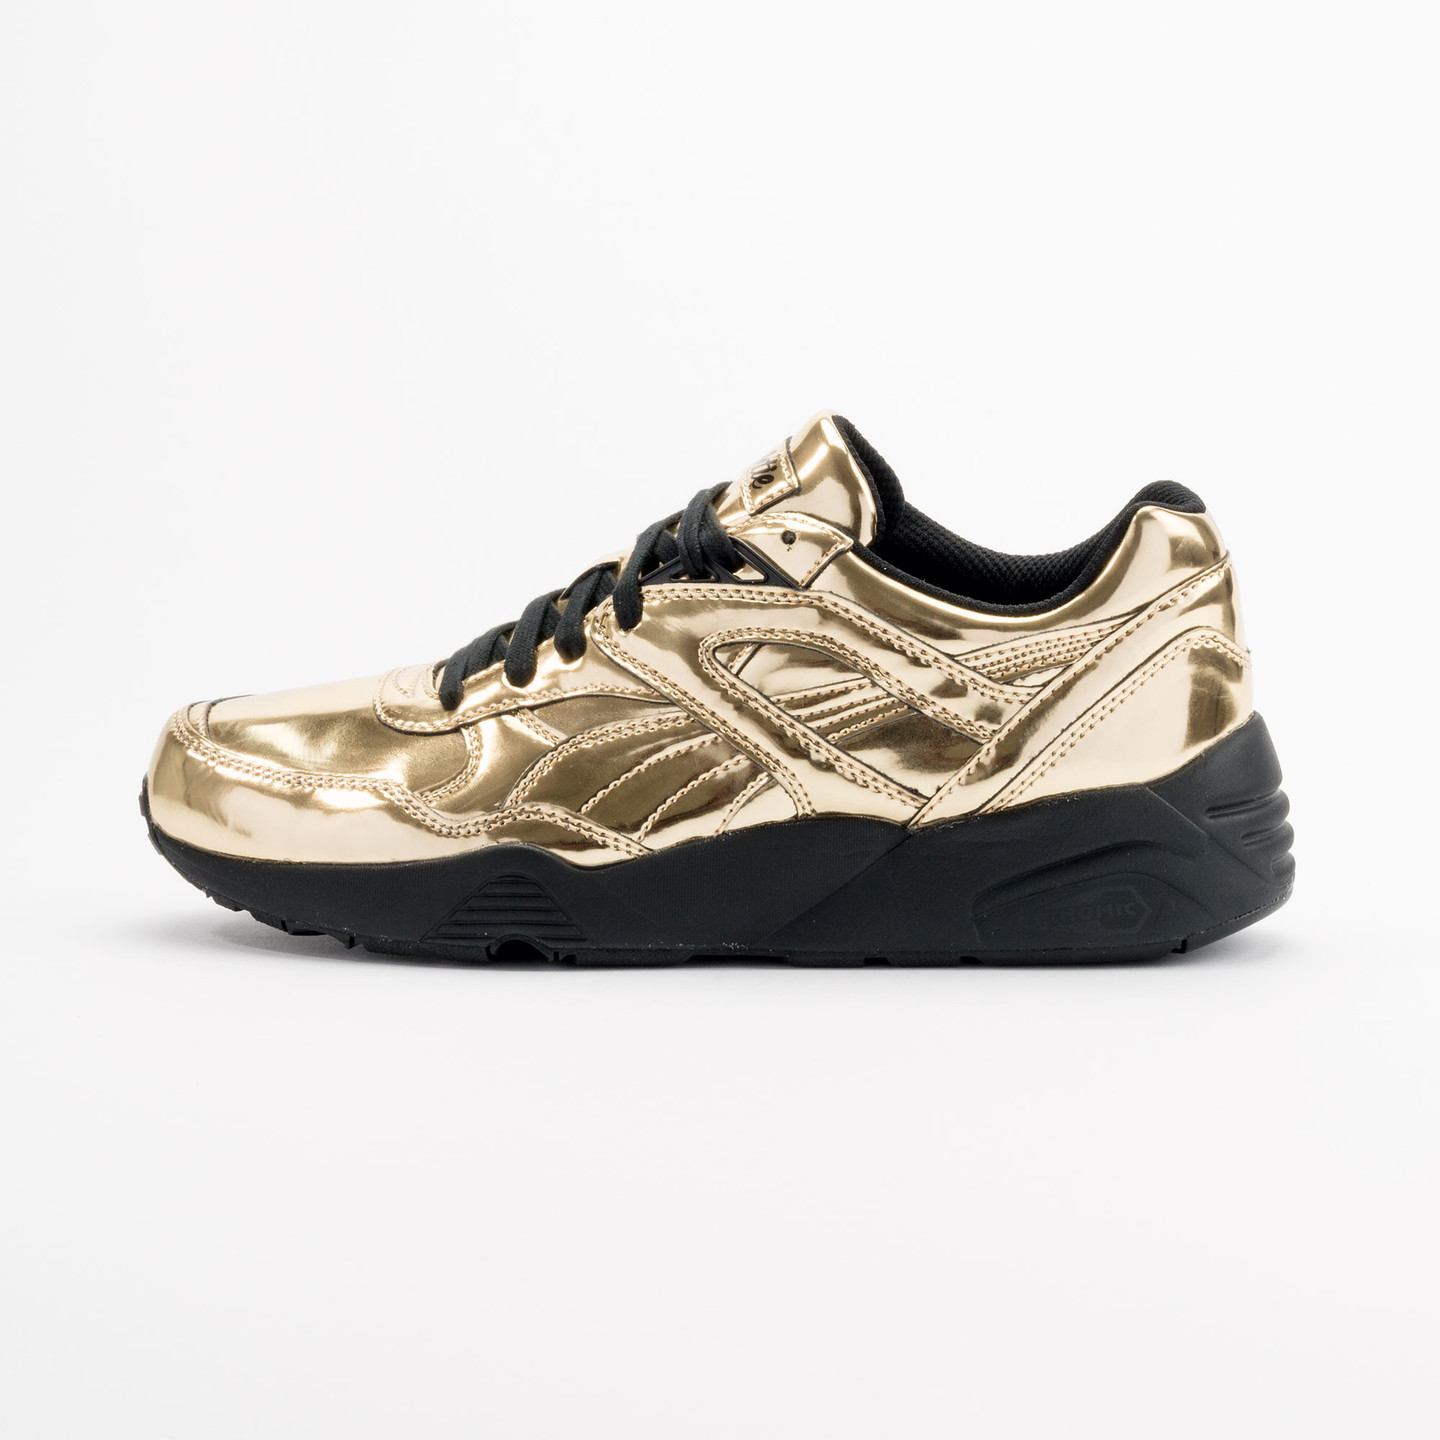 Puma R698 x Vashtie Gold Metallic Gold / Black 358838 01-41